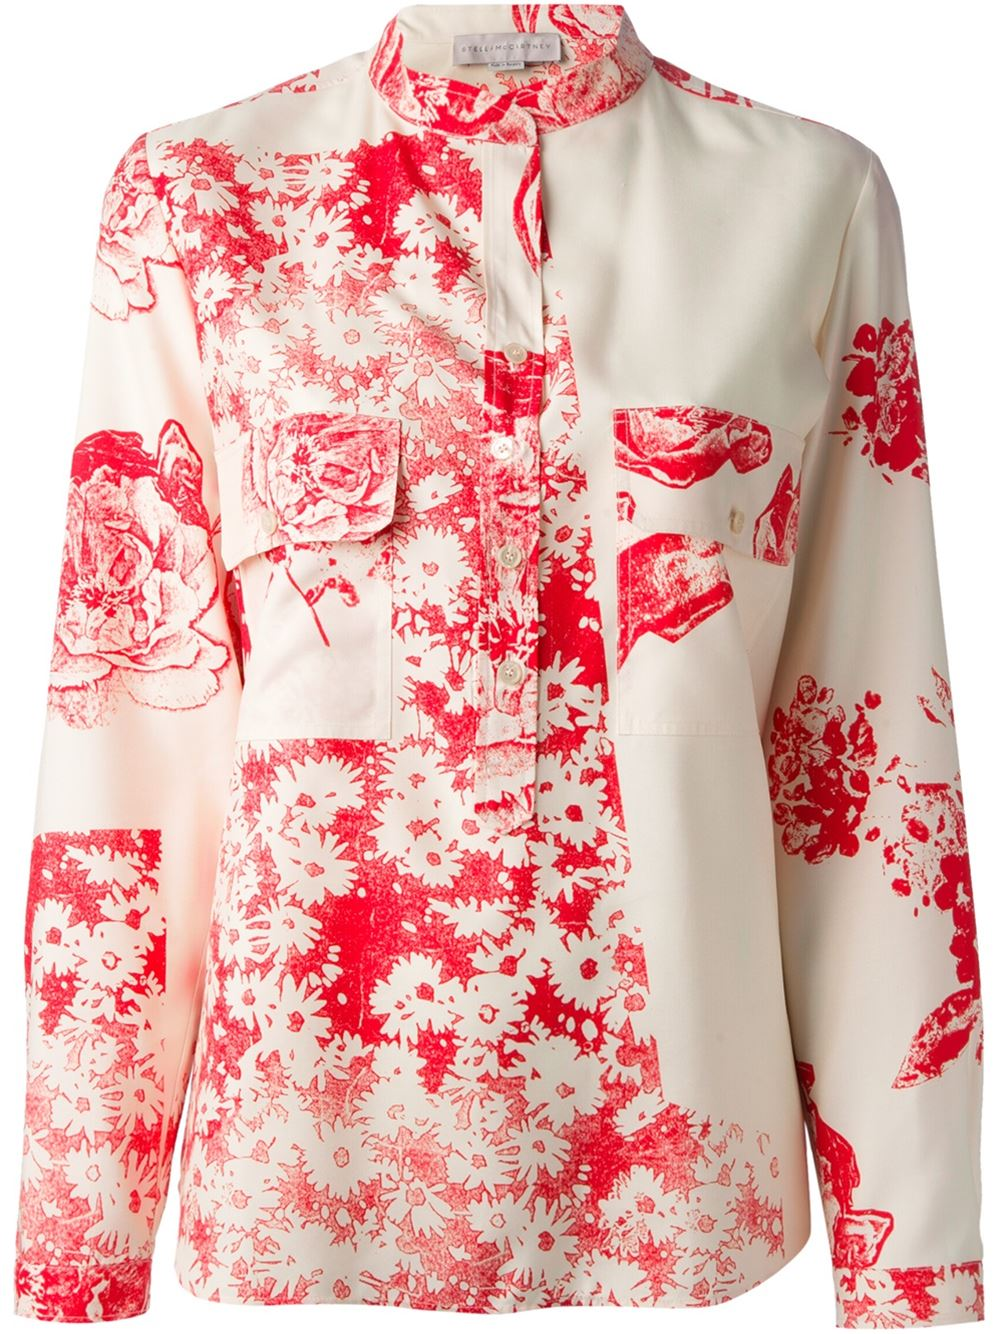 Red and white silk floral print shirt from Stella McCartney